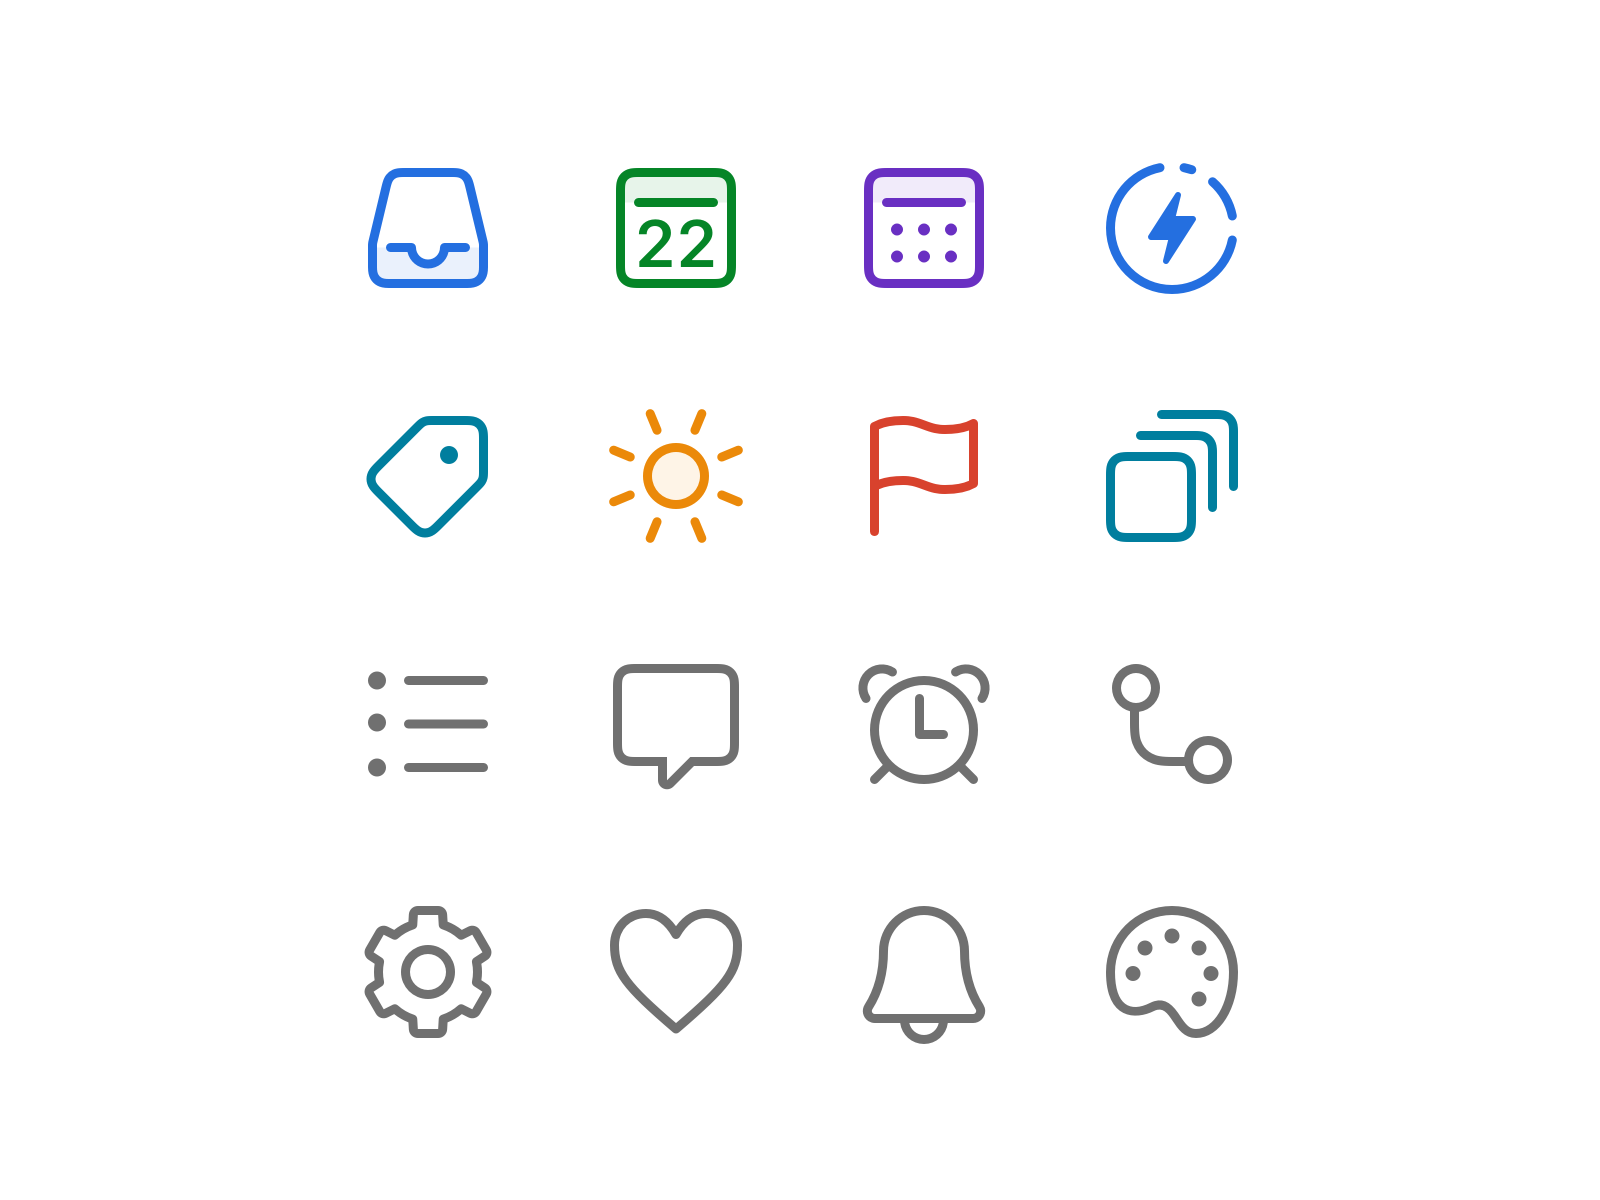 Todoist Foundations New Icons By Sam Beckett For Doist On Dribbble